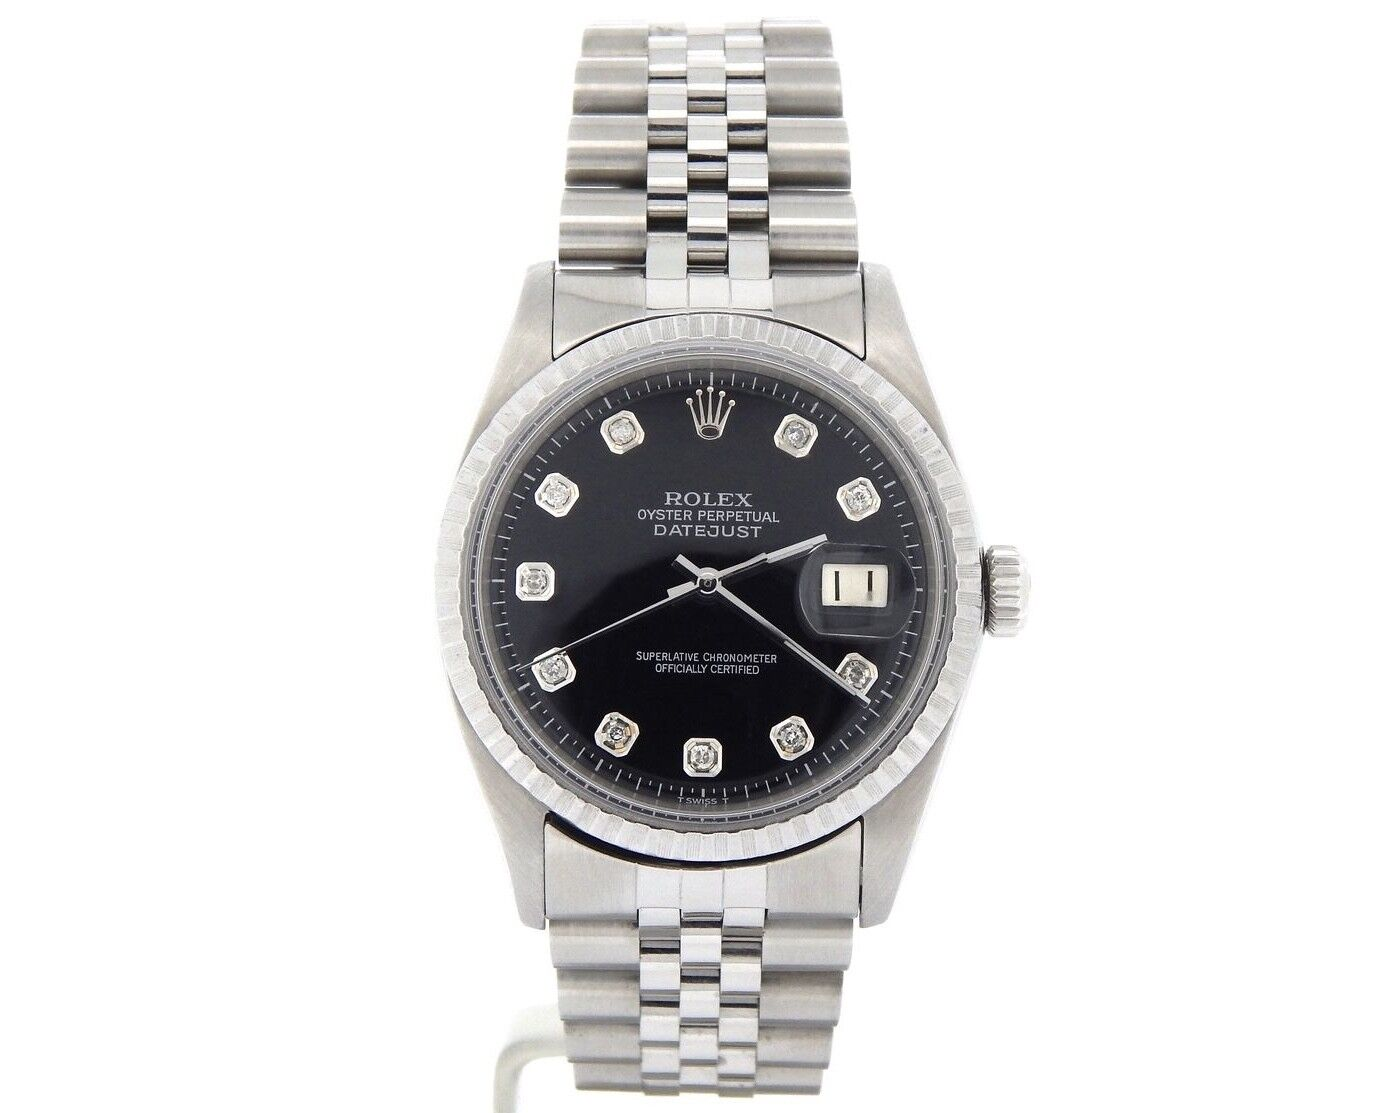 $2900.00 - Mens Rolex Datejust Stainless Steel Watch Jubilee Black Diamond Dial 1603